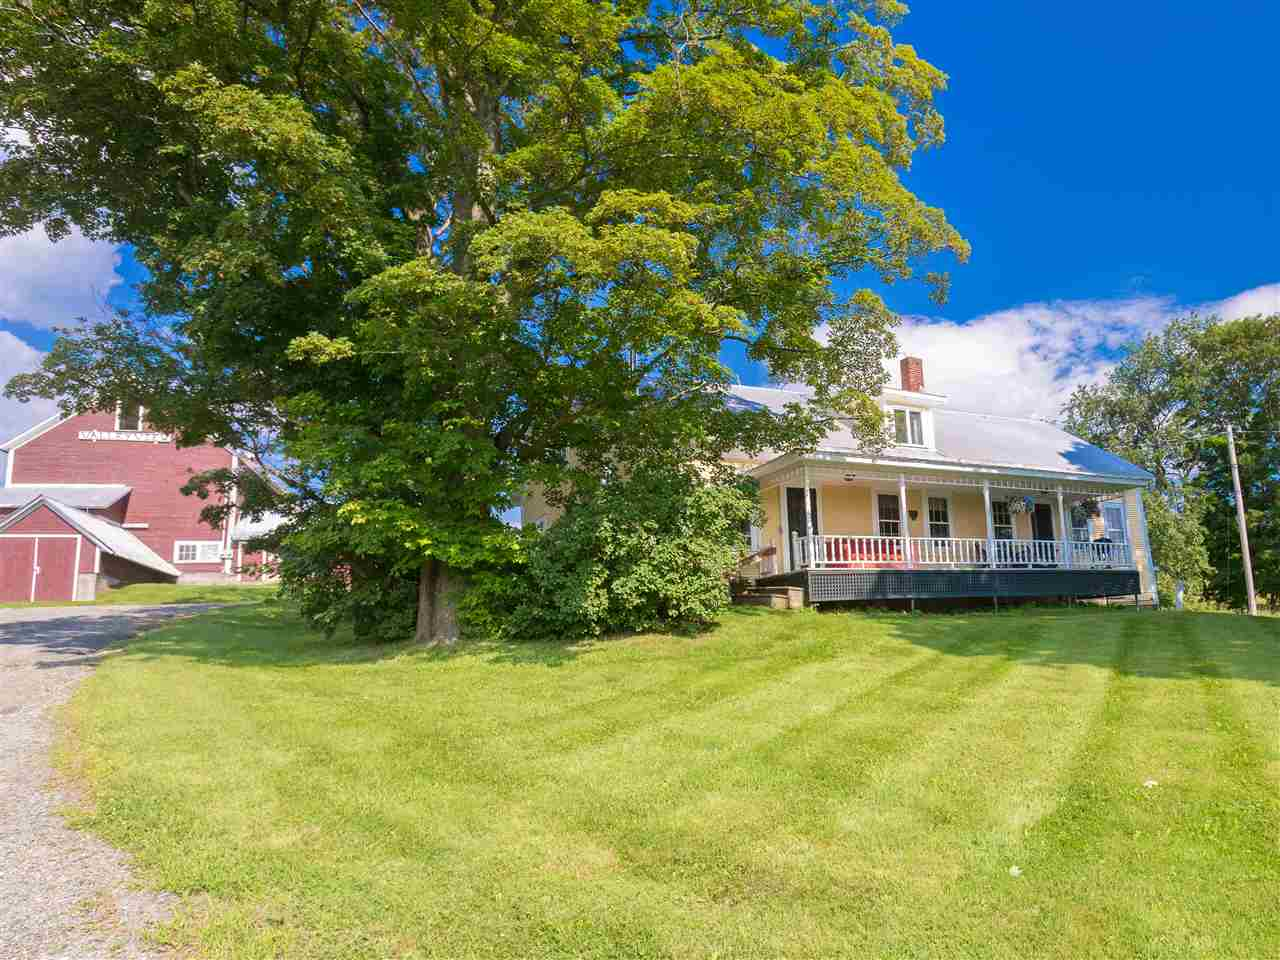 MLS 4723768: 3828 Stagecoach Road, Morristown VT